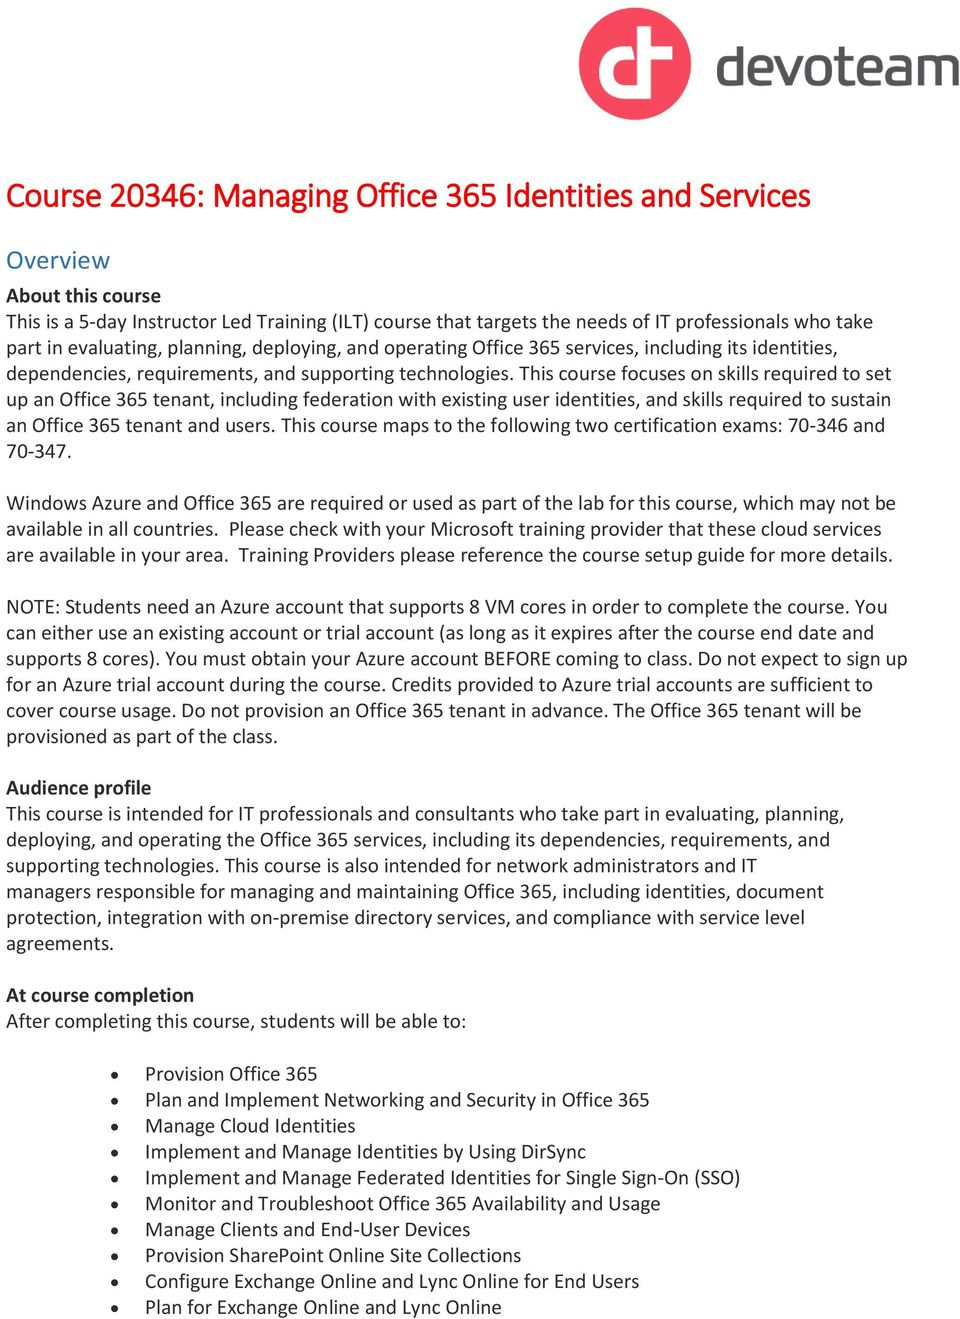 This course focuses on skills required to set up an Office 365 tenant, including federation with existing user identities, and skills required to sustain an Office 365 tenant and users.